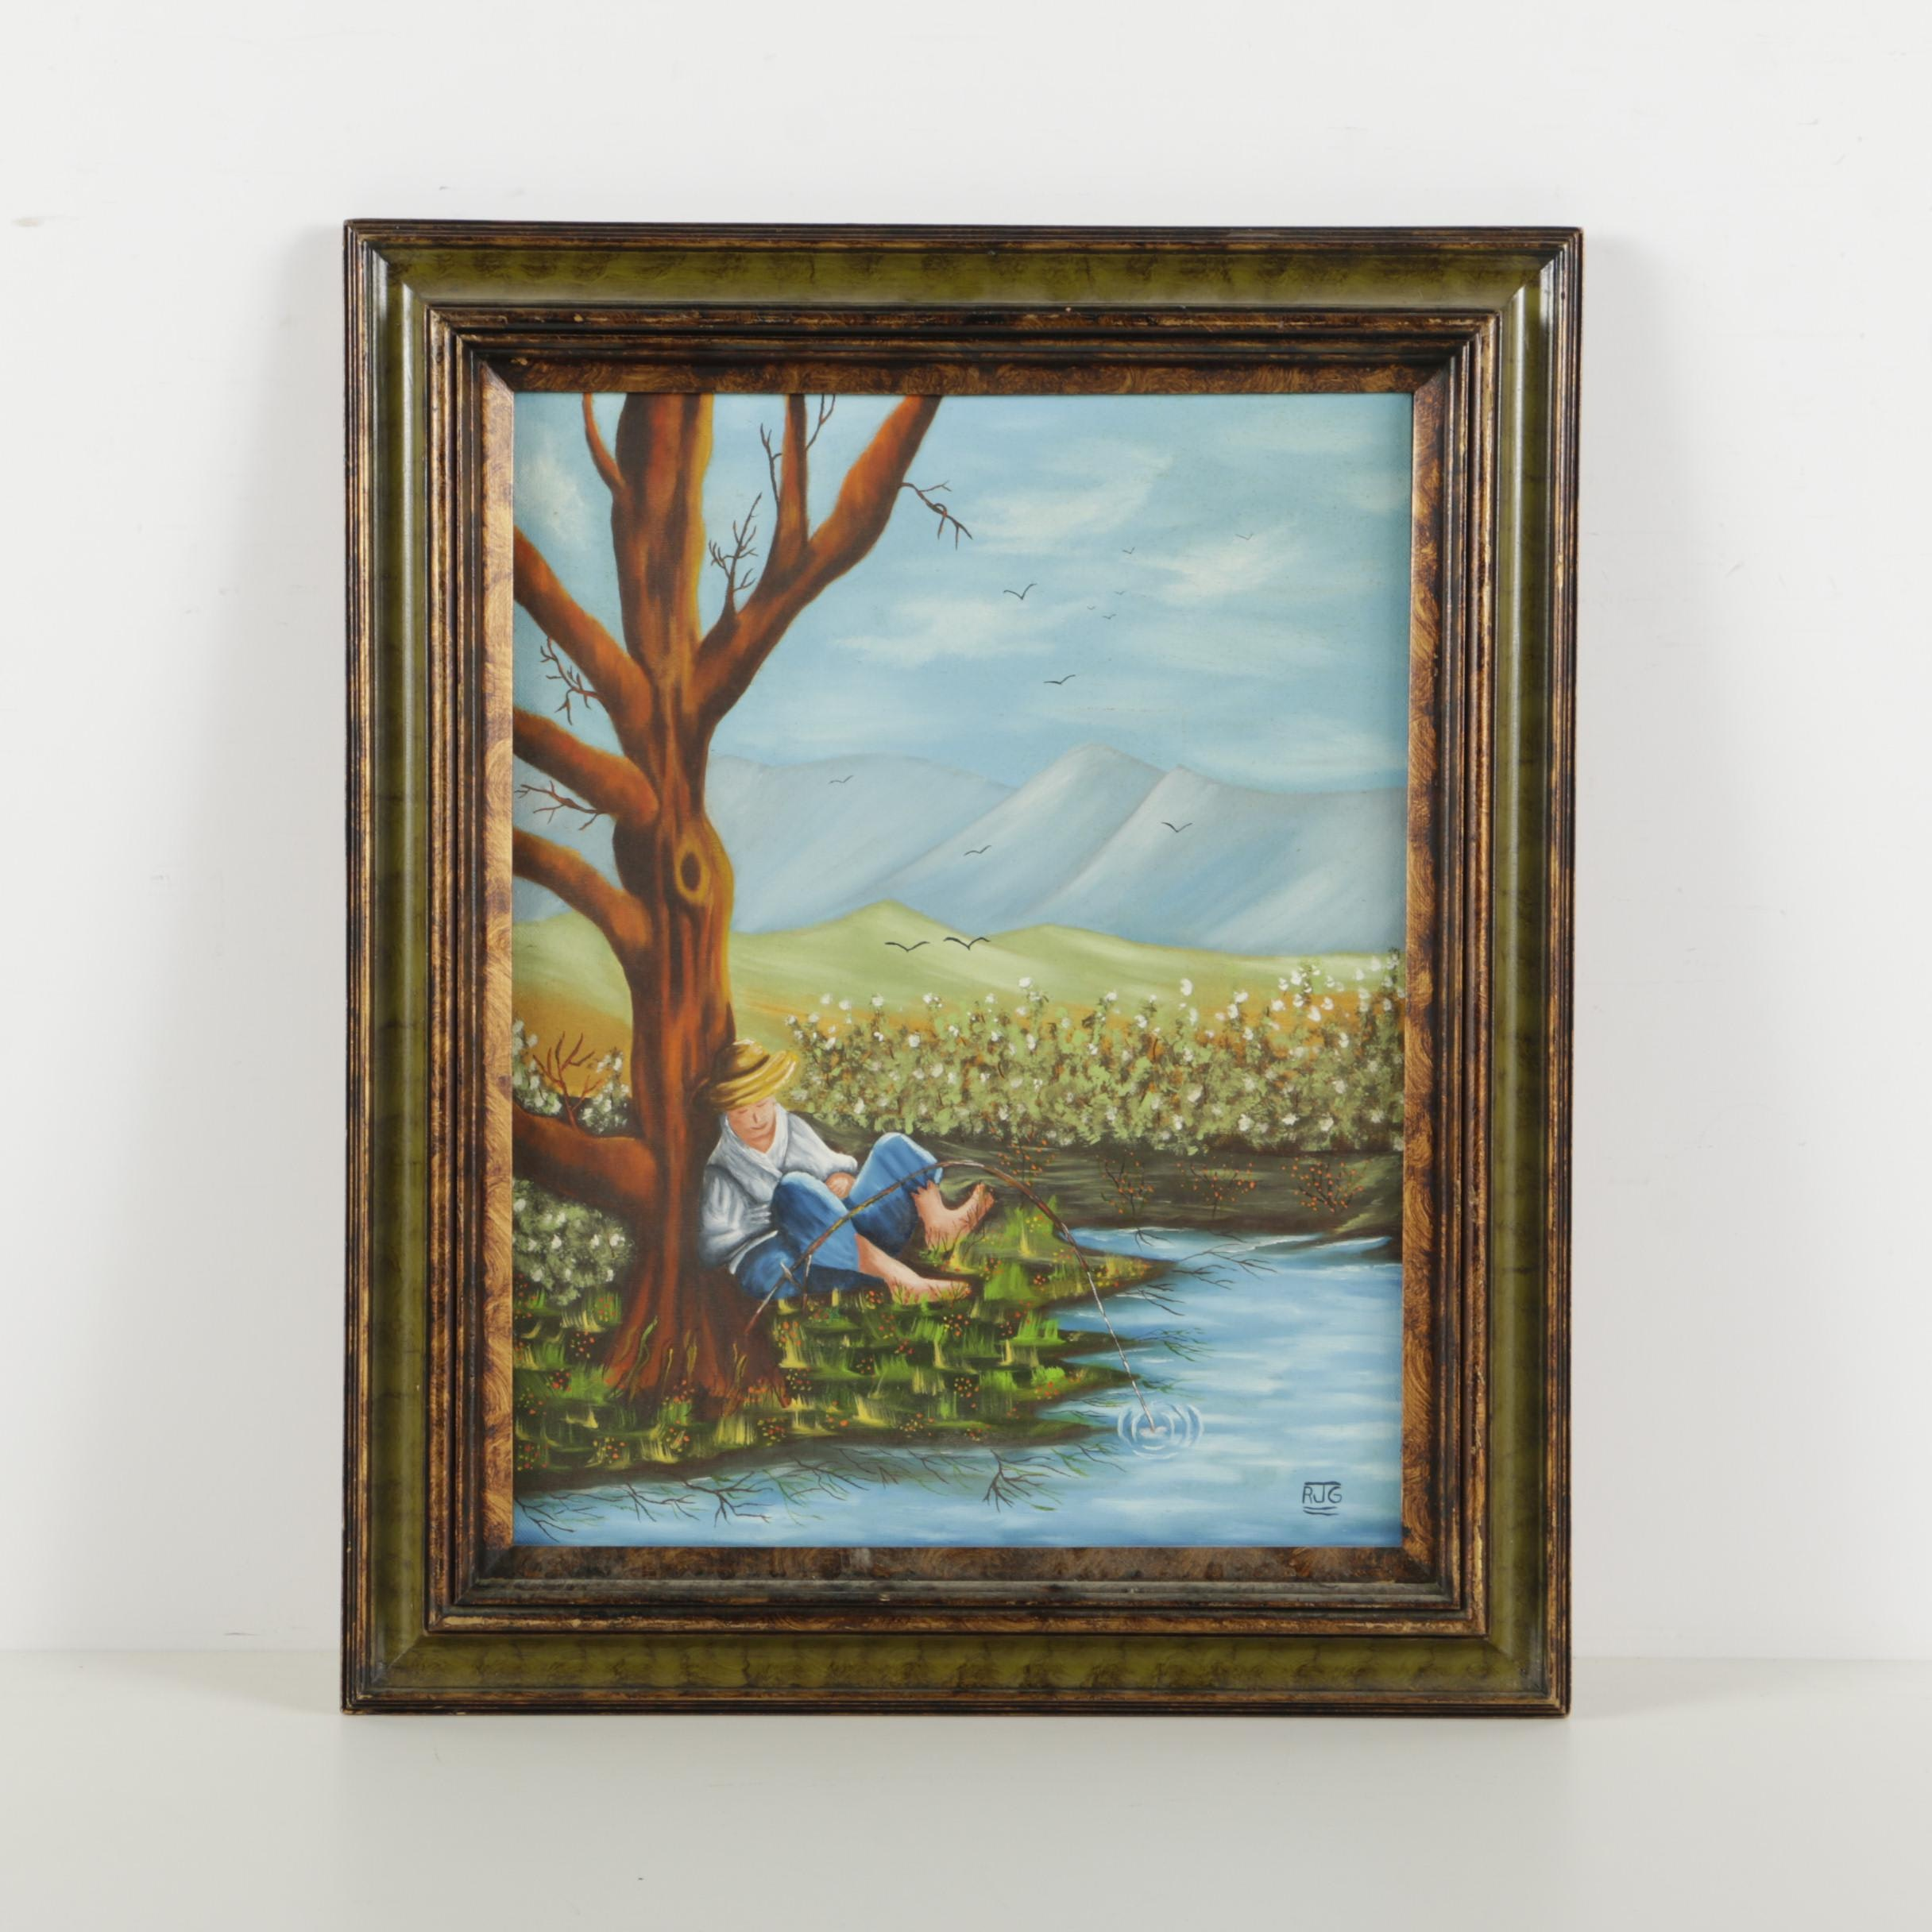 Rodney J. Gottlieb Oil Painting on Canvas of Country Fishing Scene